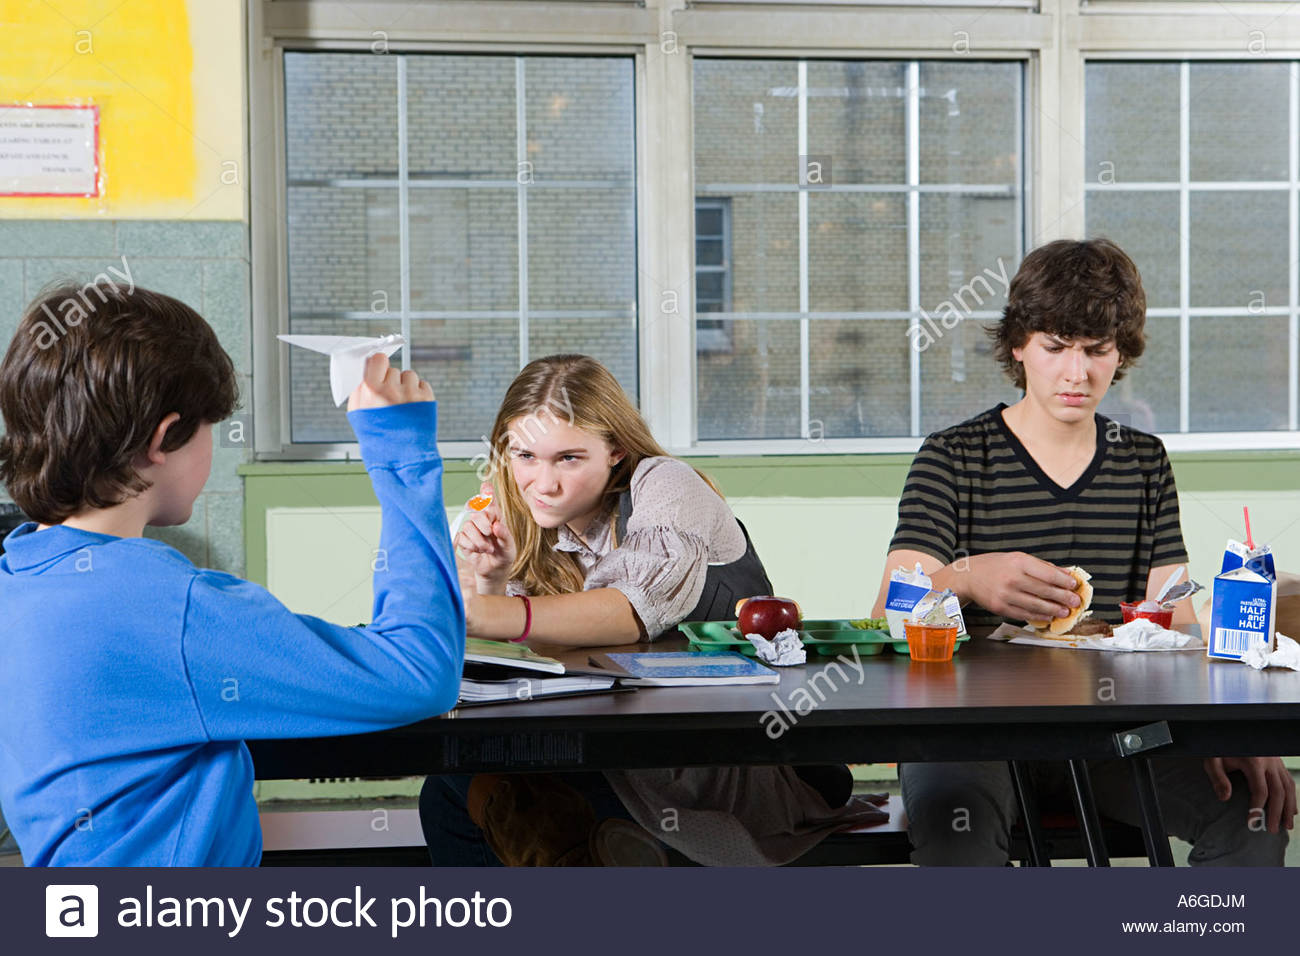 Teenagers in cafeteria - Stock Image